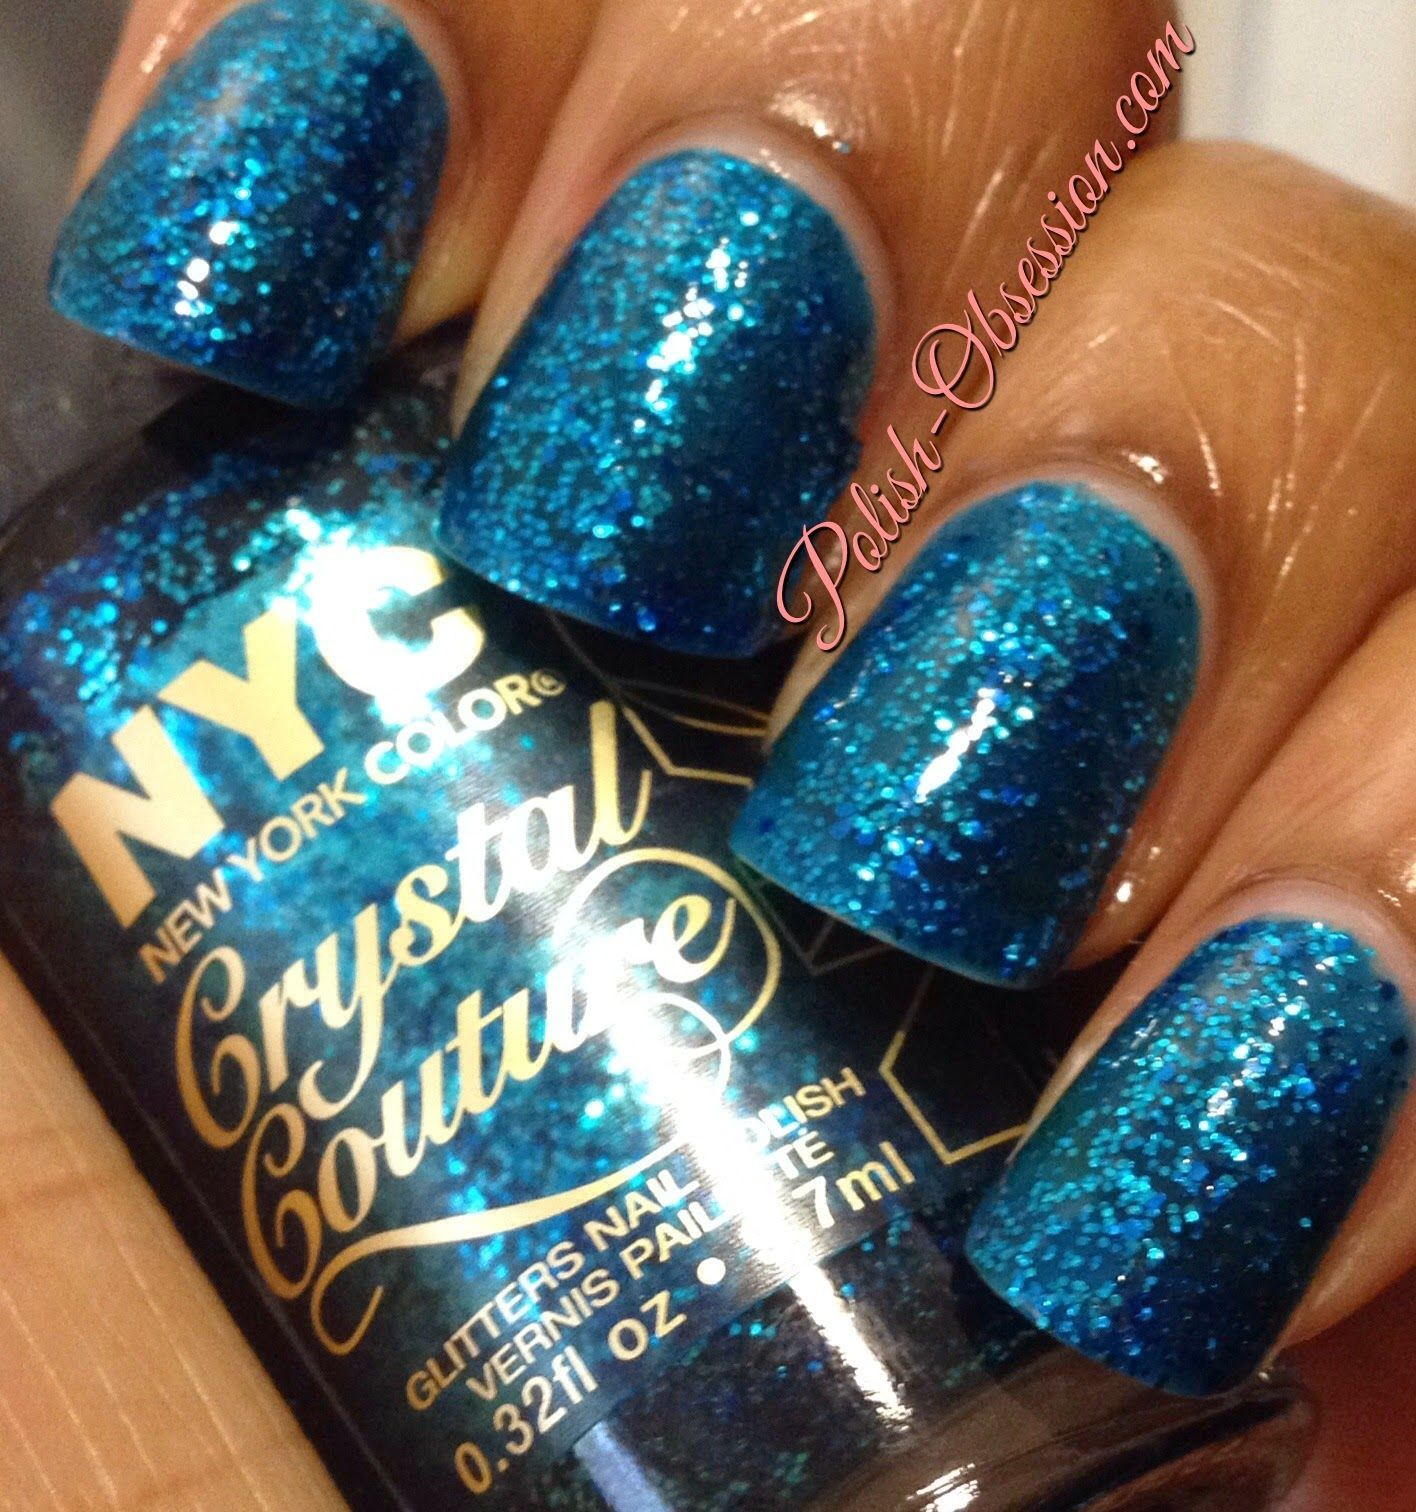 nyccolor Blue Majesty   Nails and Polish   Pinterest   Color nails ...